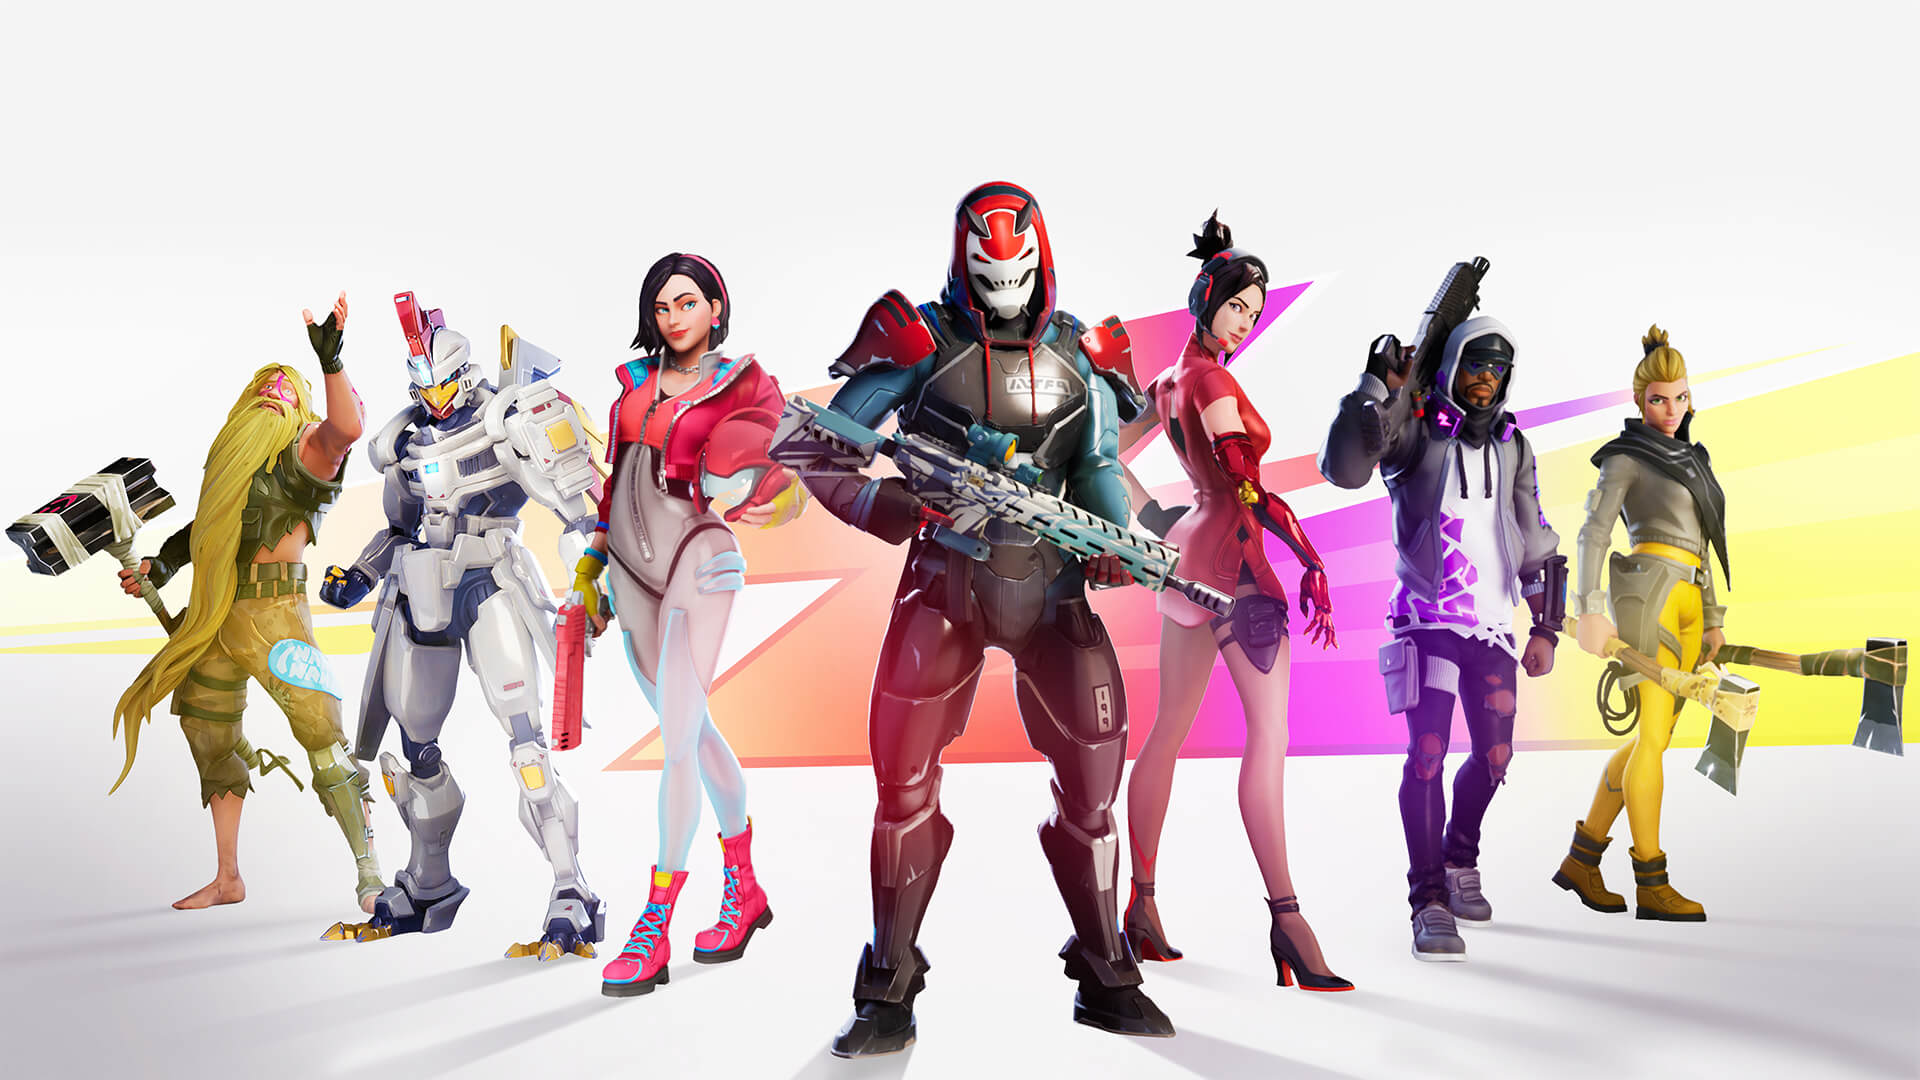 season 9 battle pass